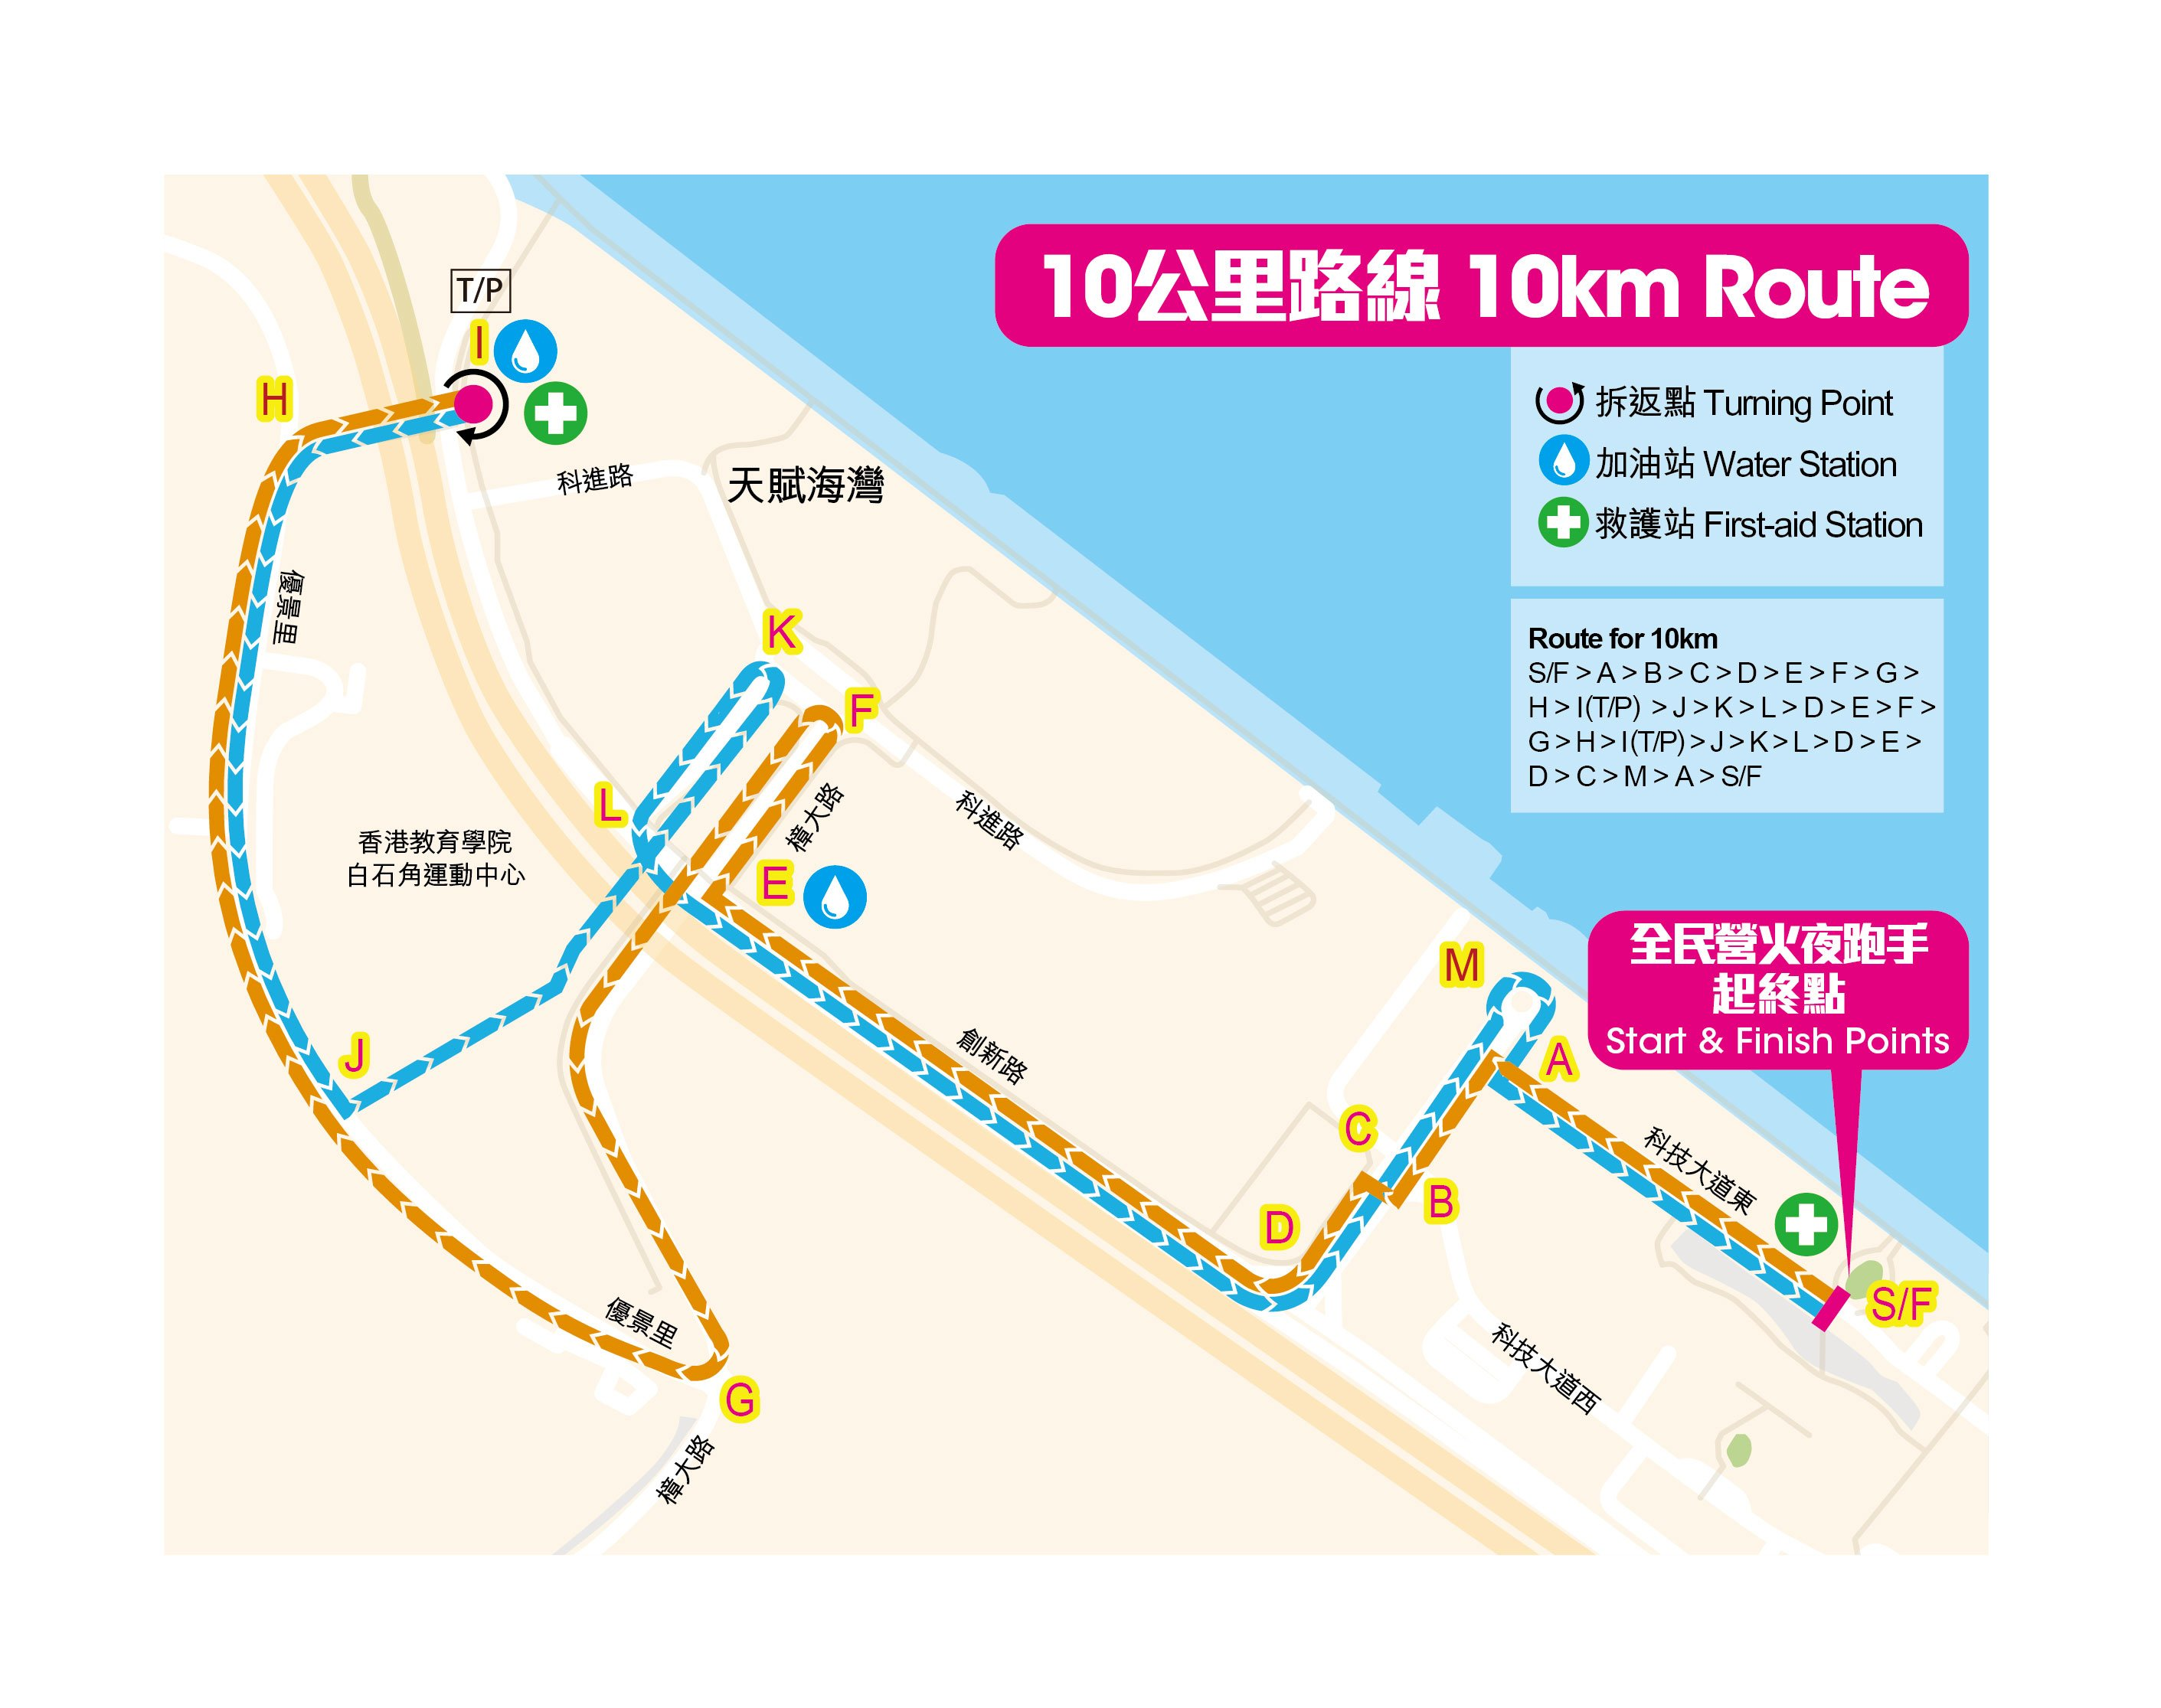 Let's Run x Mizuno 2016_10K Map_V4